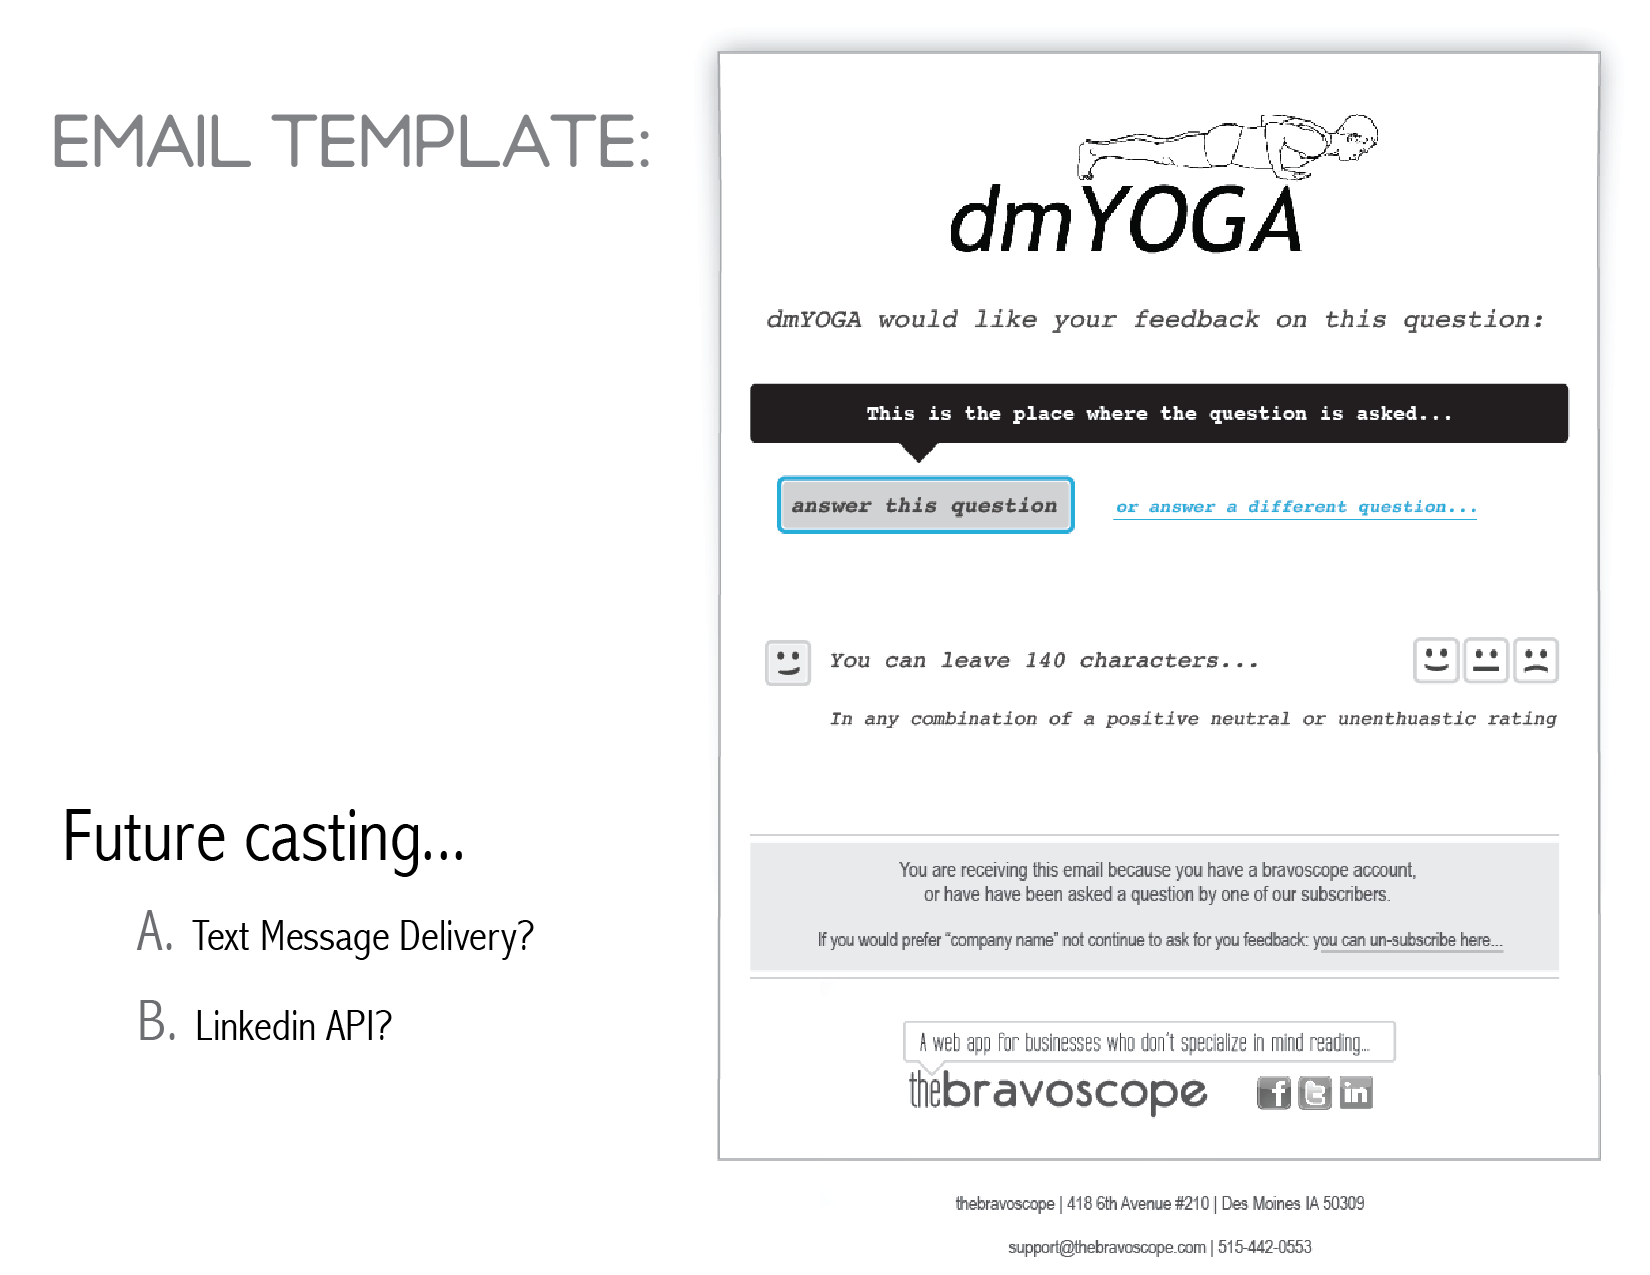 supplemental . 001 - email template.png